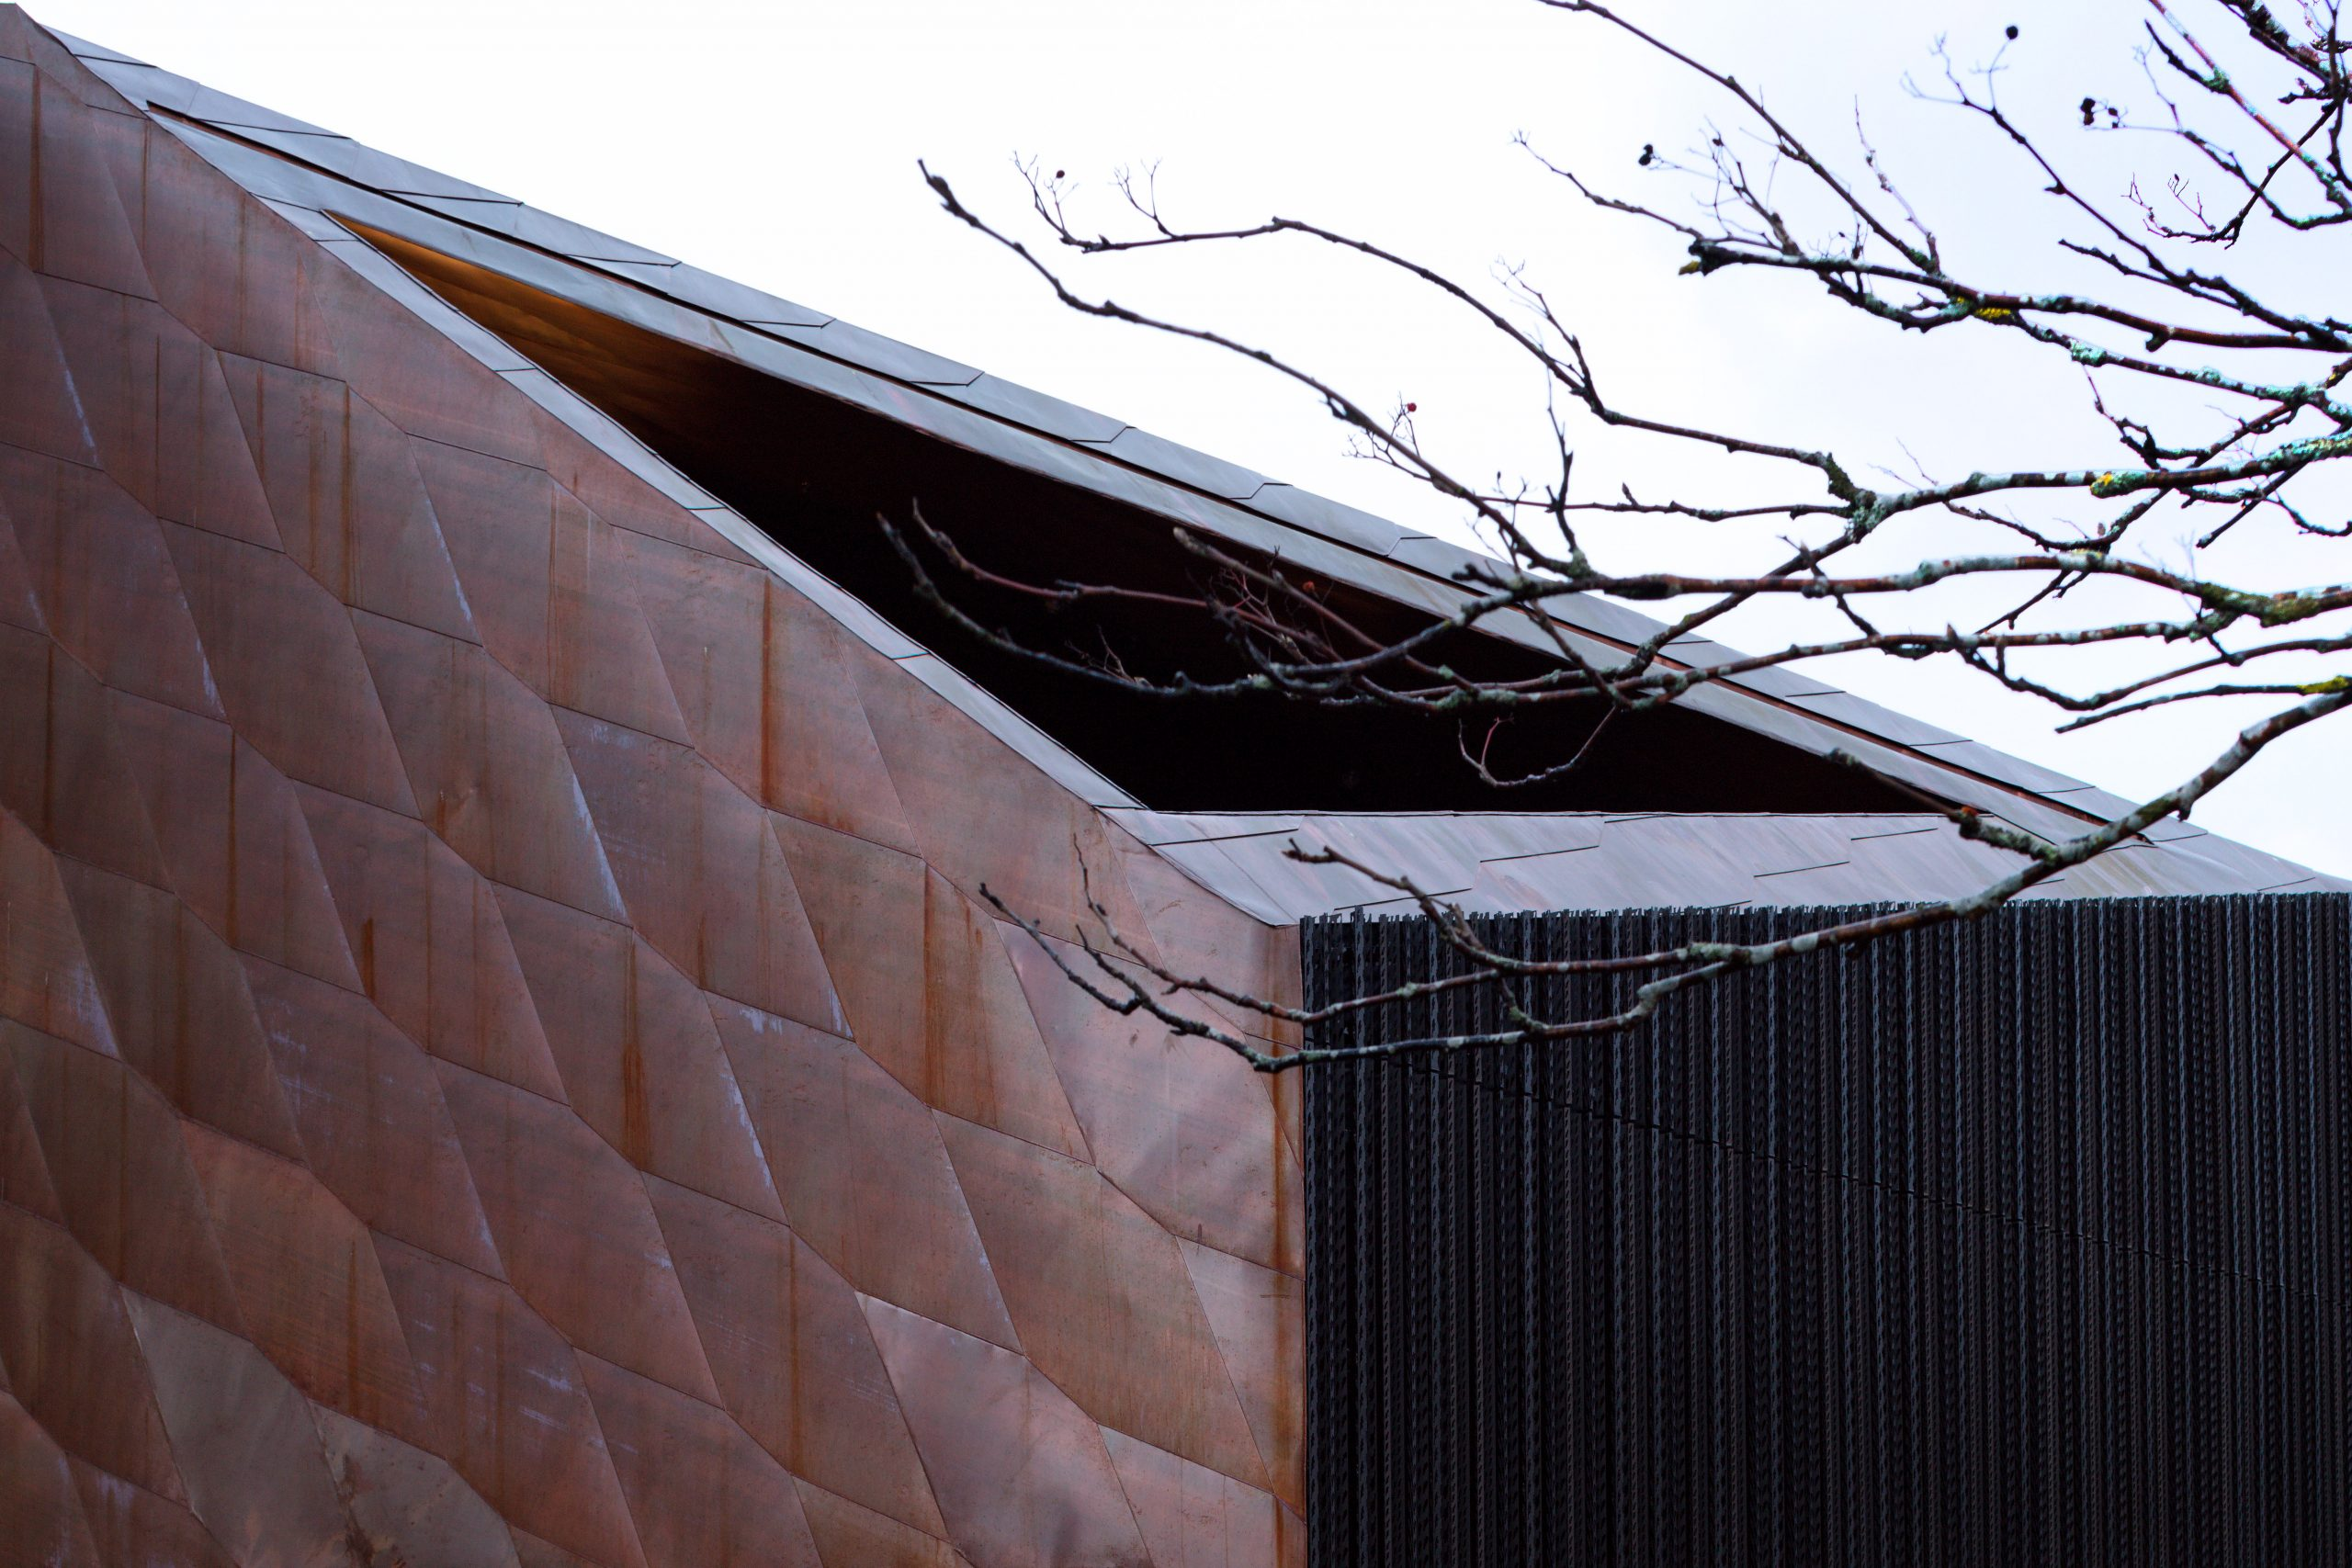 View of the walls and roof of the Kirkkonummi Library located in Finland. The brown-coloured walls are clad from Nordic Brown Light copper.